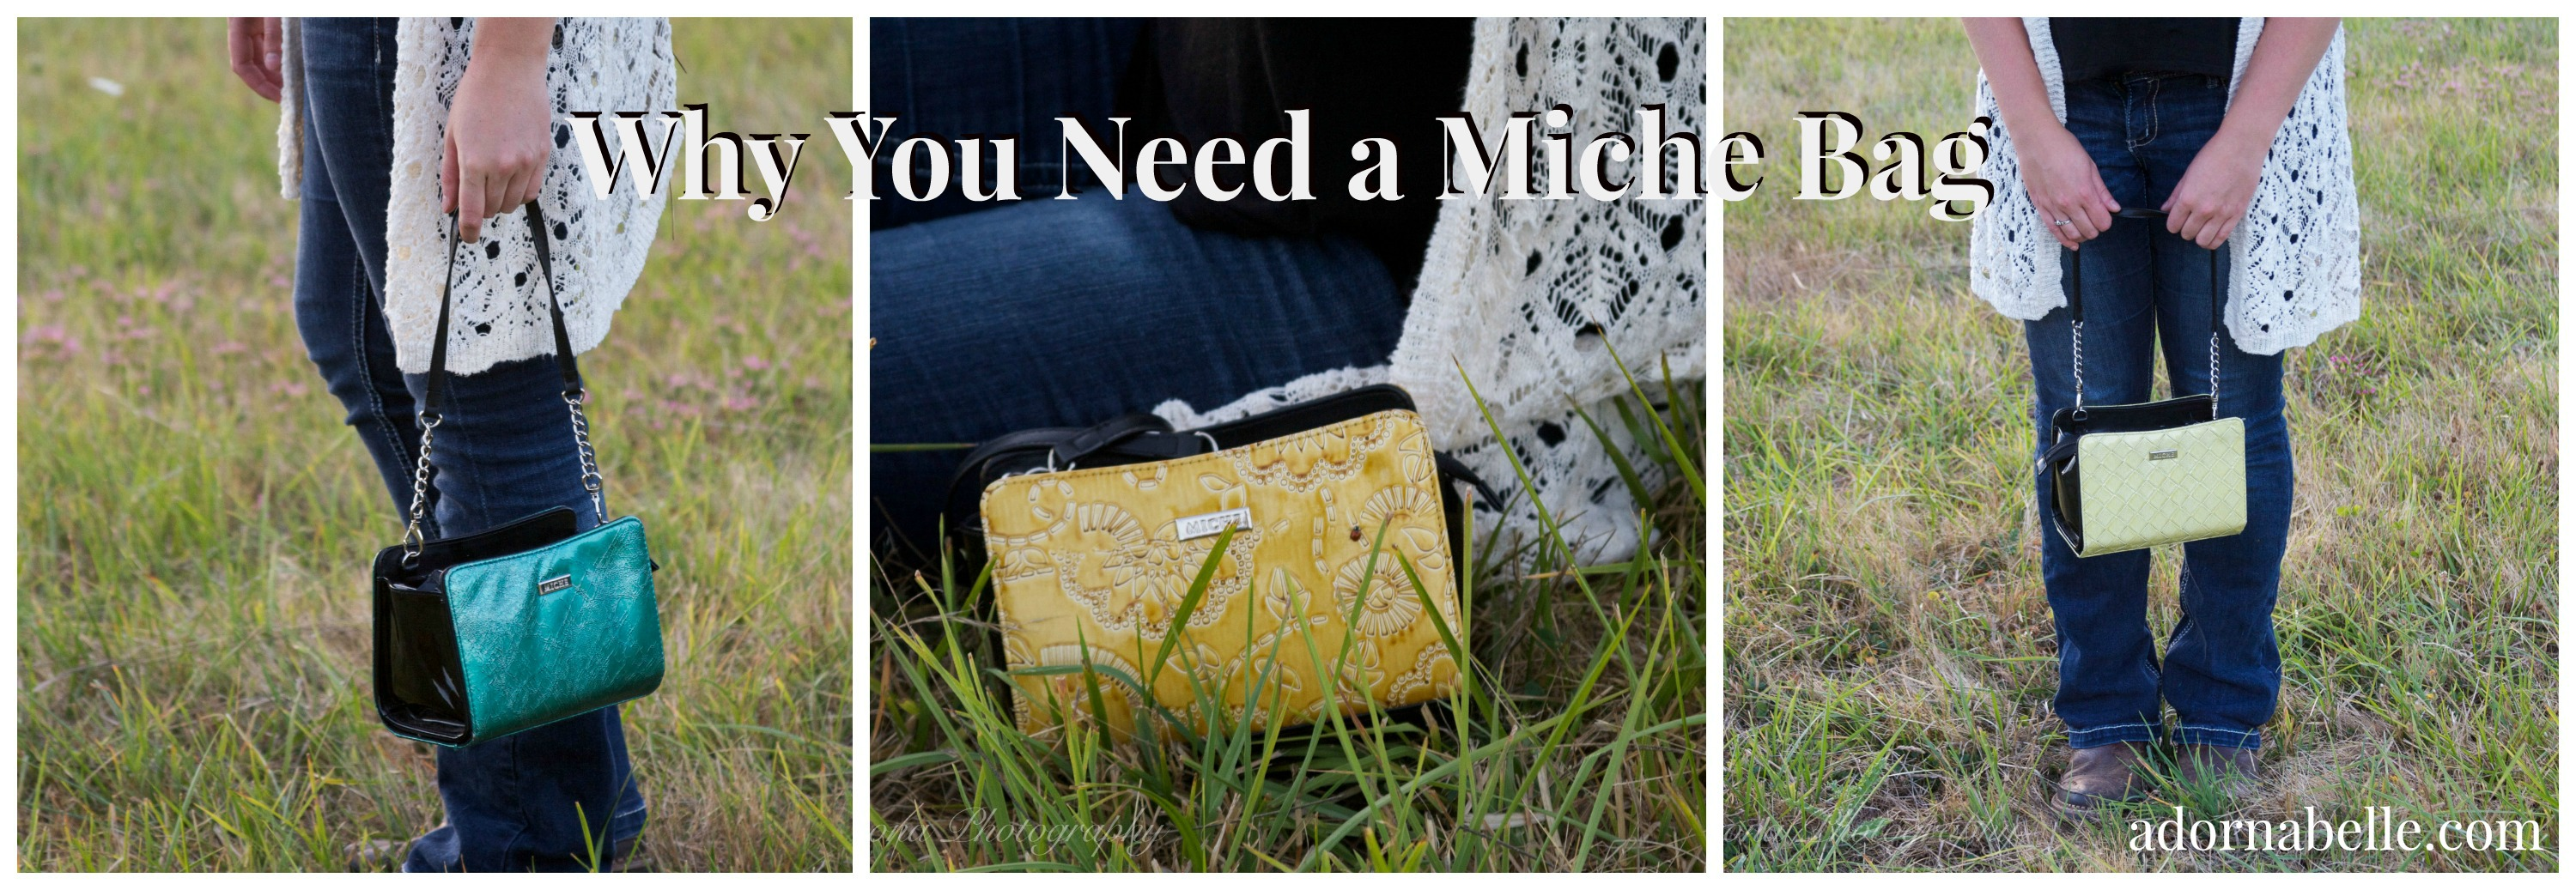 Miche Bags- The Last Purse You'll Need